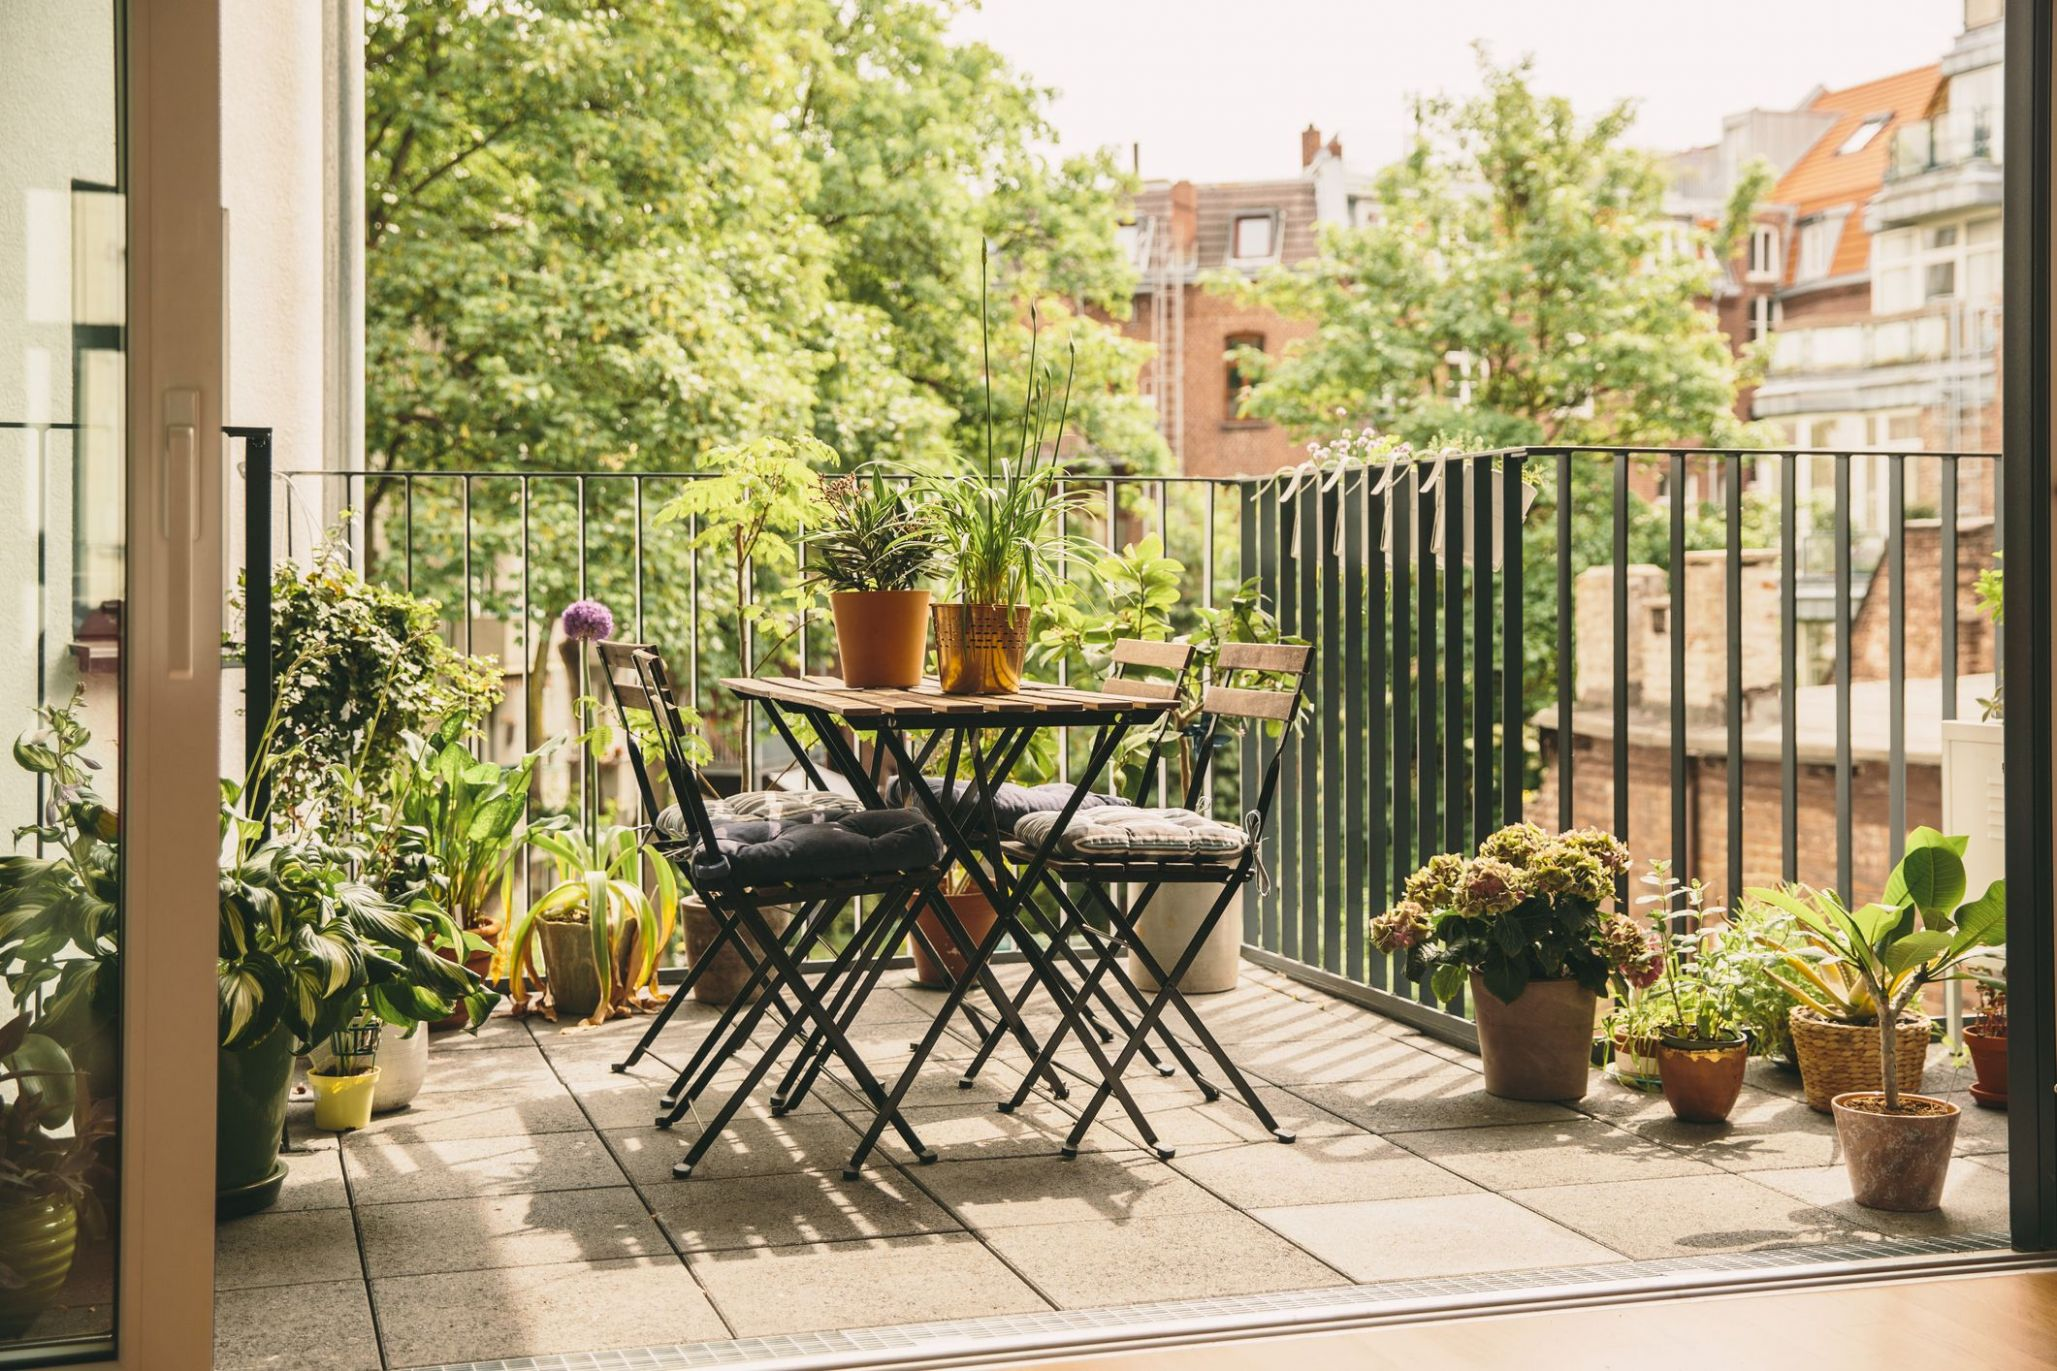 Balcony Garden Ideas - Plants, Furniture and Affordable Updates - balcony trellis ideas